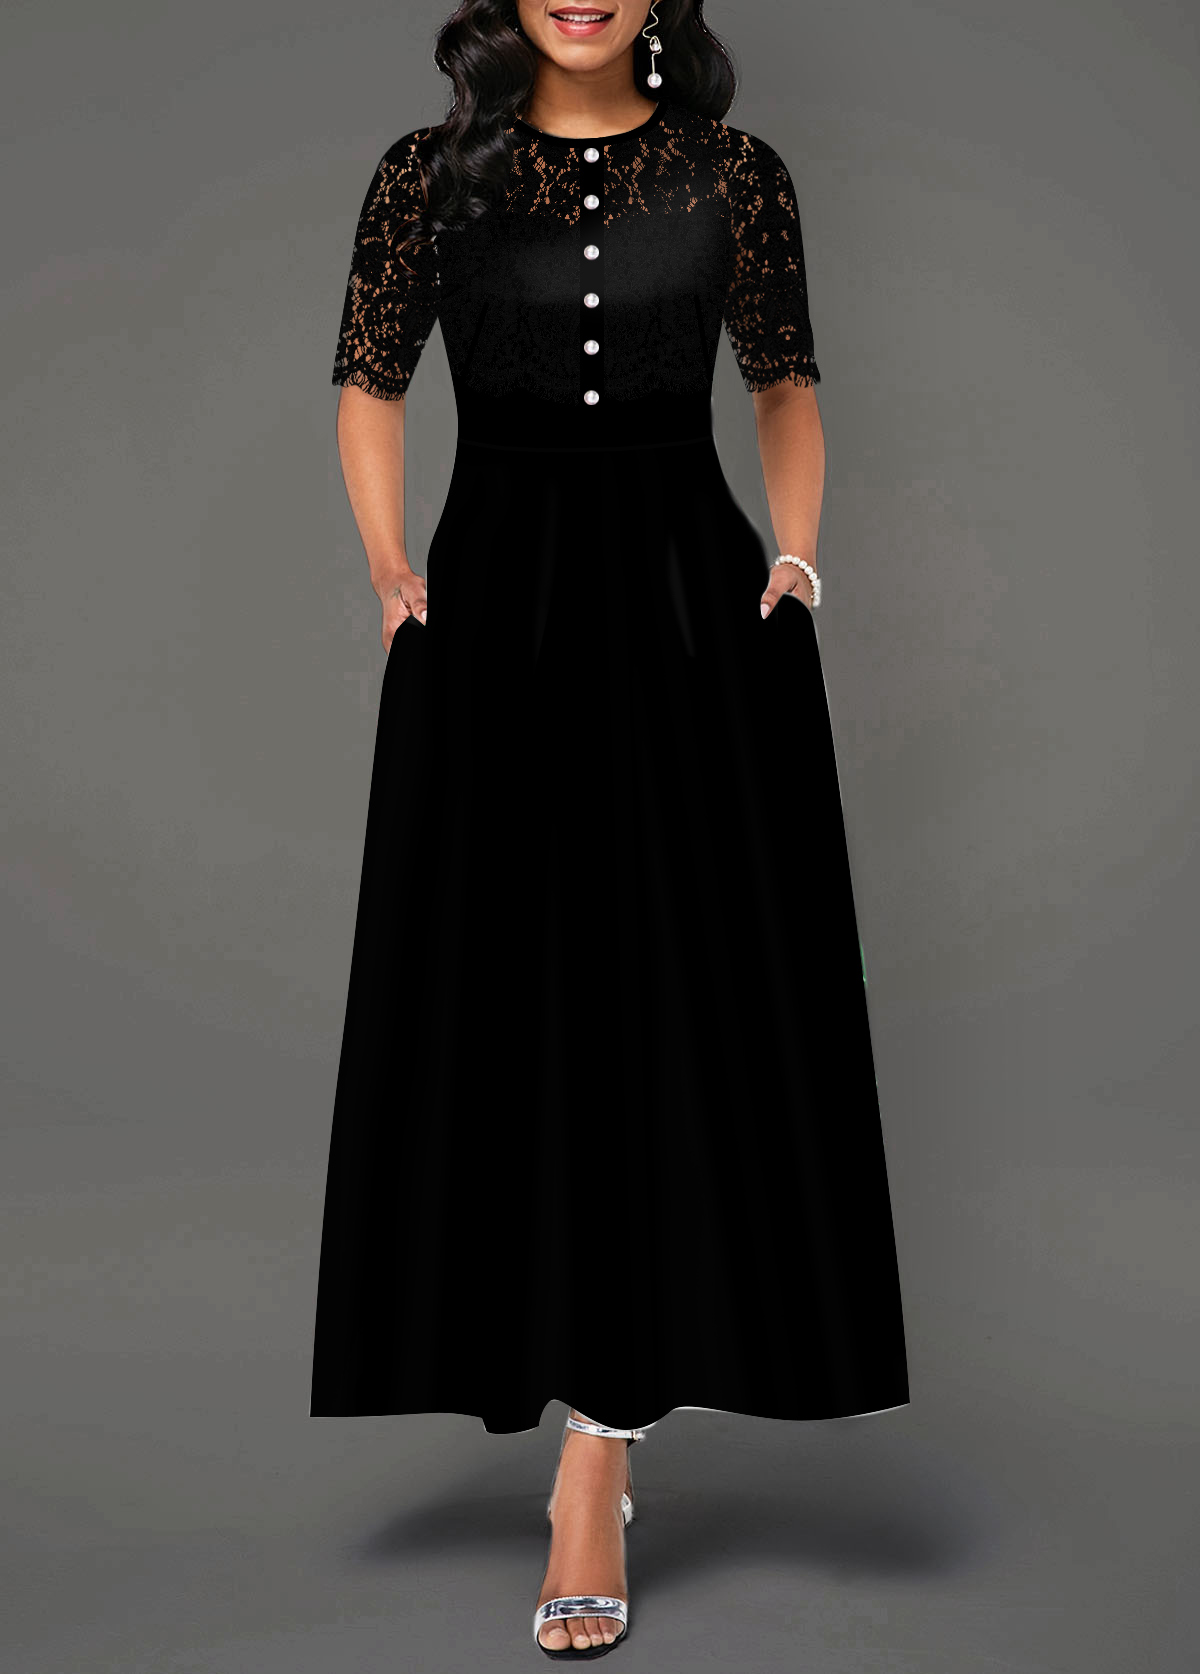 Lace Panel Button Front Pocket Dress